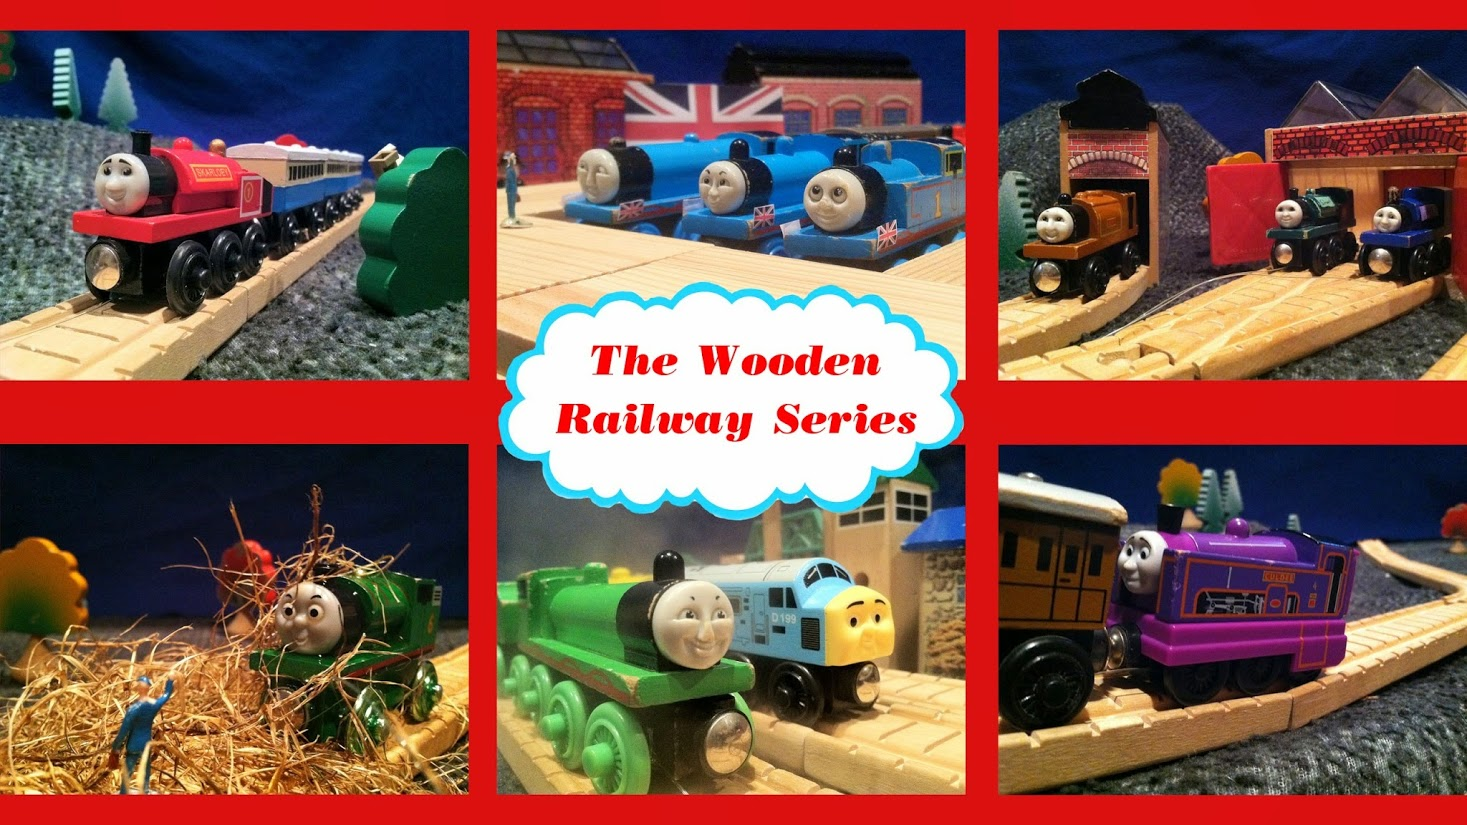 Skarloeyrailway01 Thomas Wooden Railway Community Fandom Powered